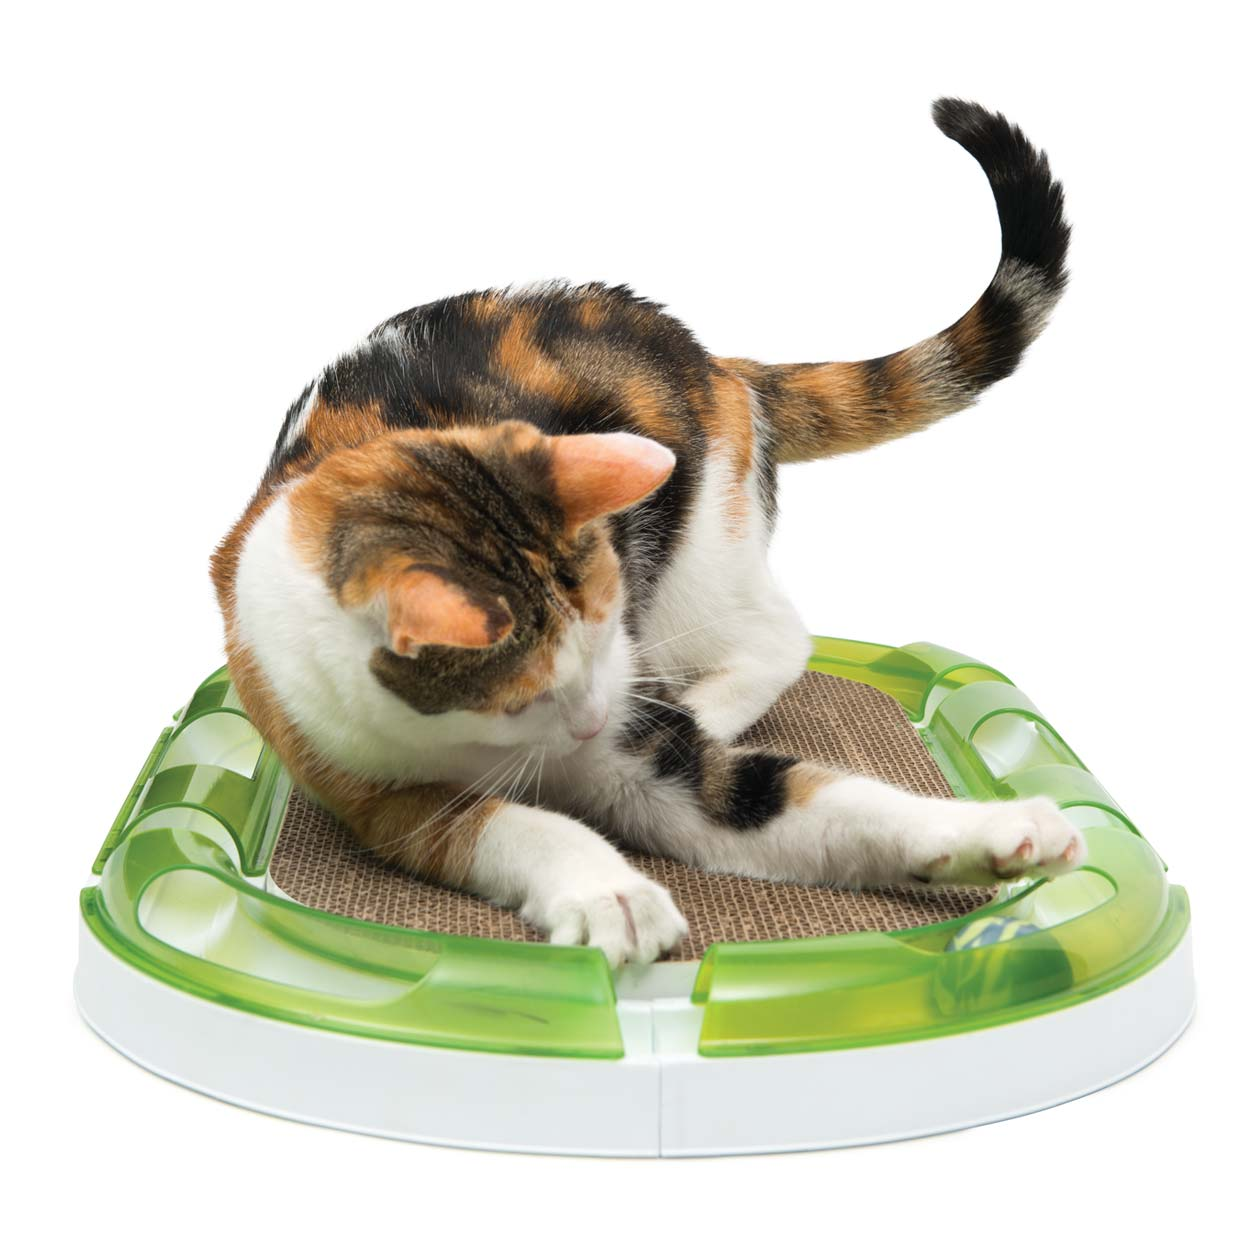 Cat playing with the Catit 2.0 oval scratcher and the Senses 2.0 circuit